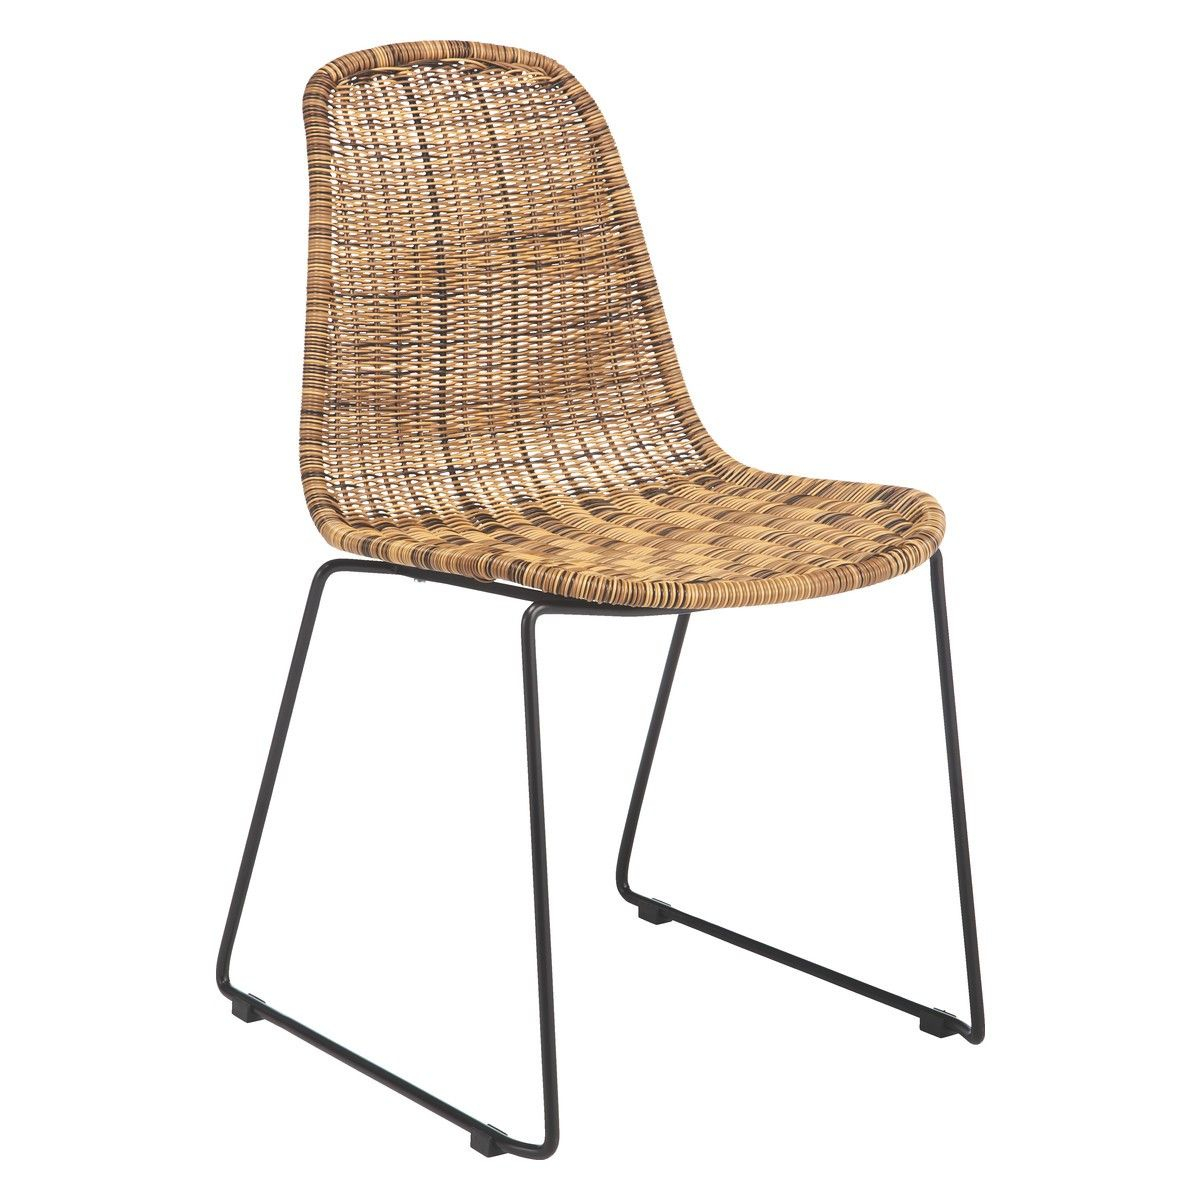 Wicker Dining Chairs Mickey Synthetic Rattan Chair pertaining to size 1200 X 1200